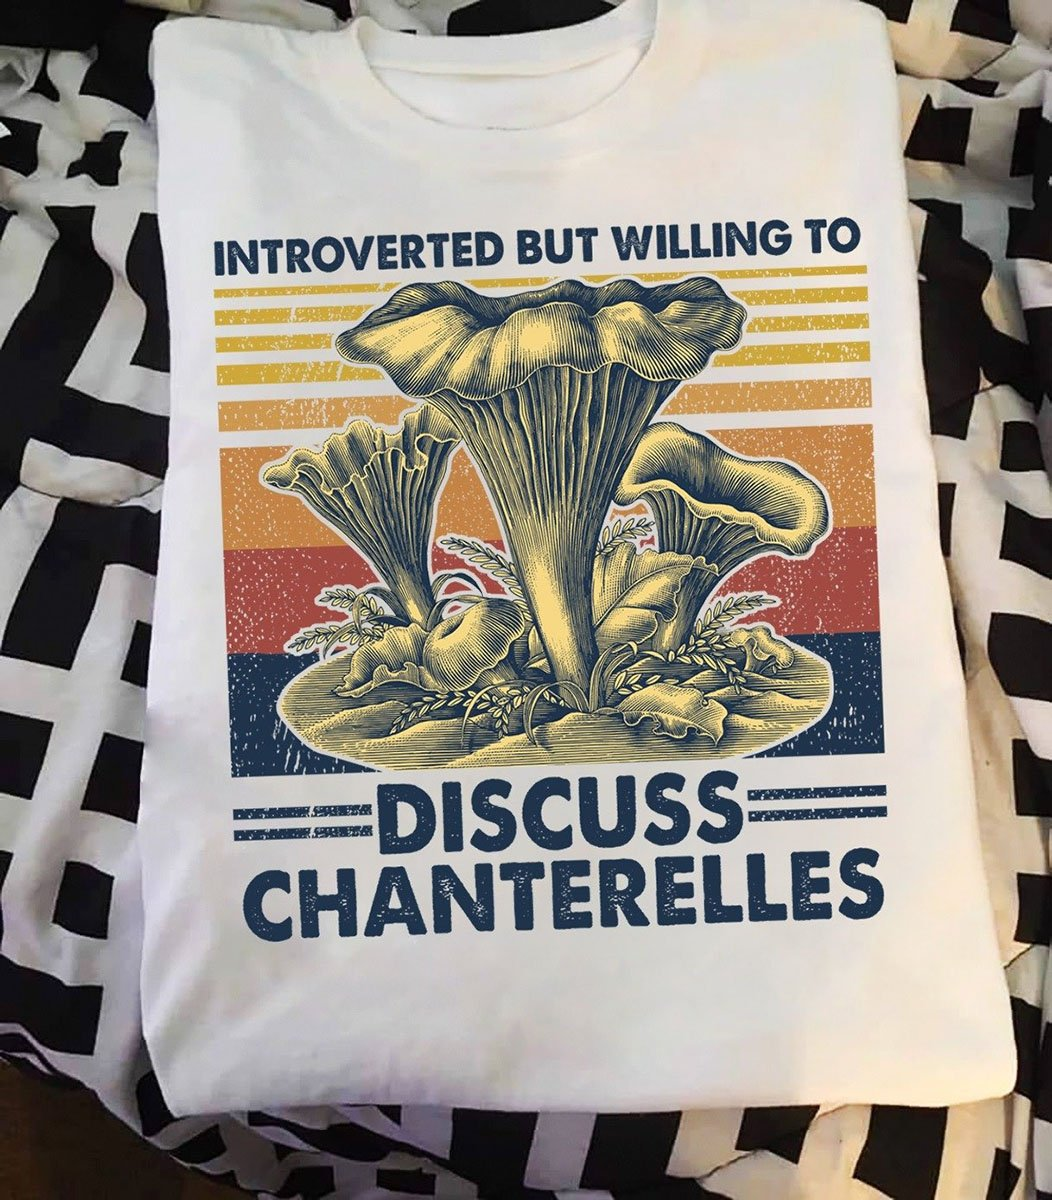 Mushroom - Introverted but willing to discuss Chanterelles